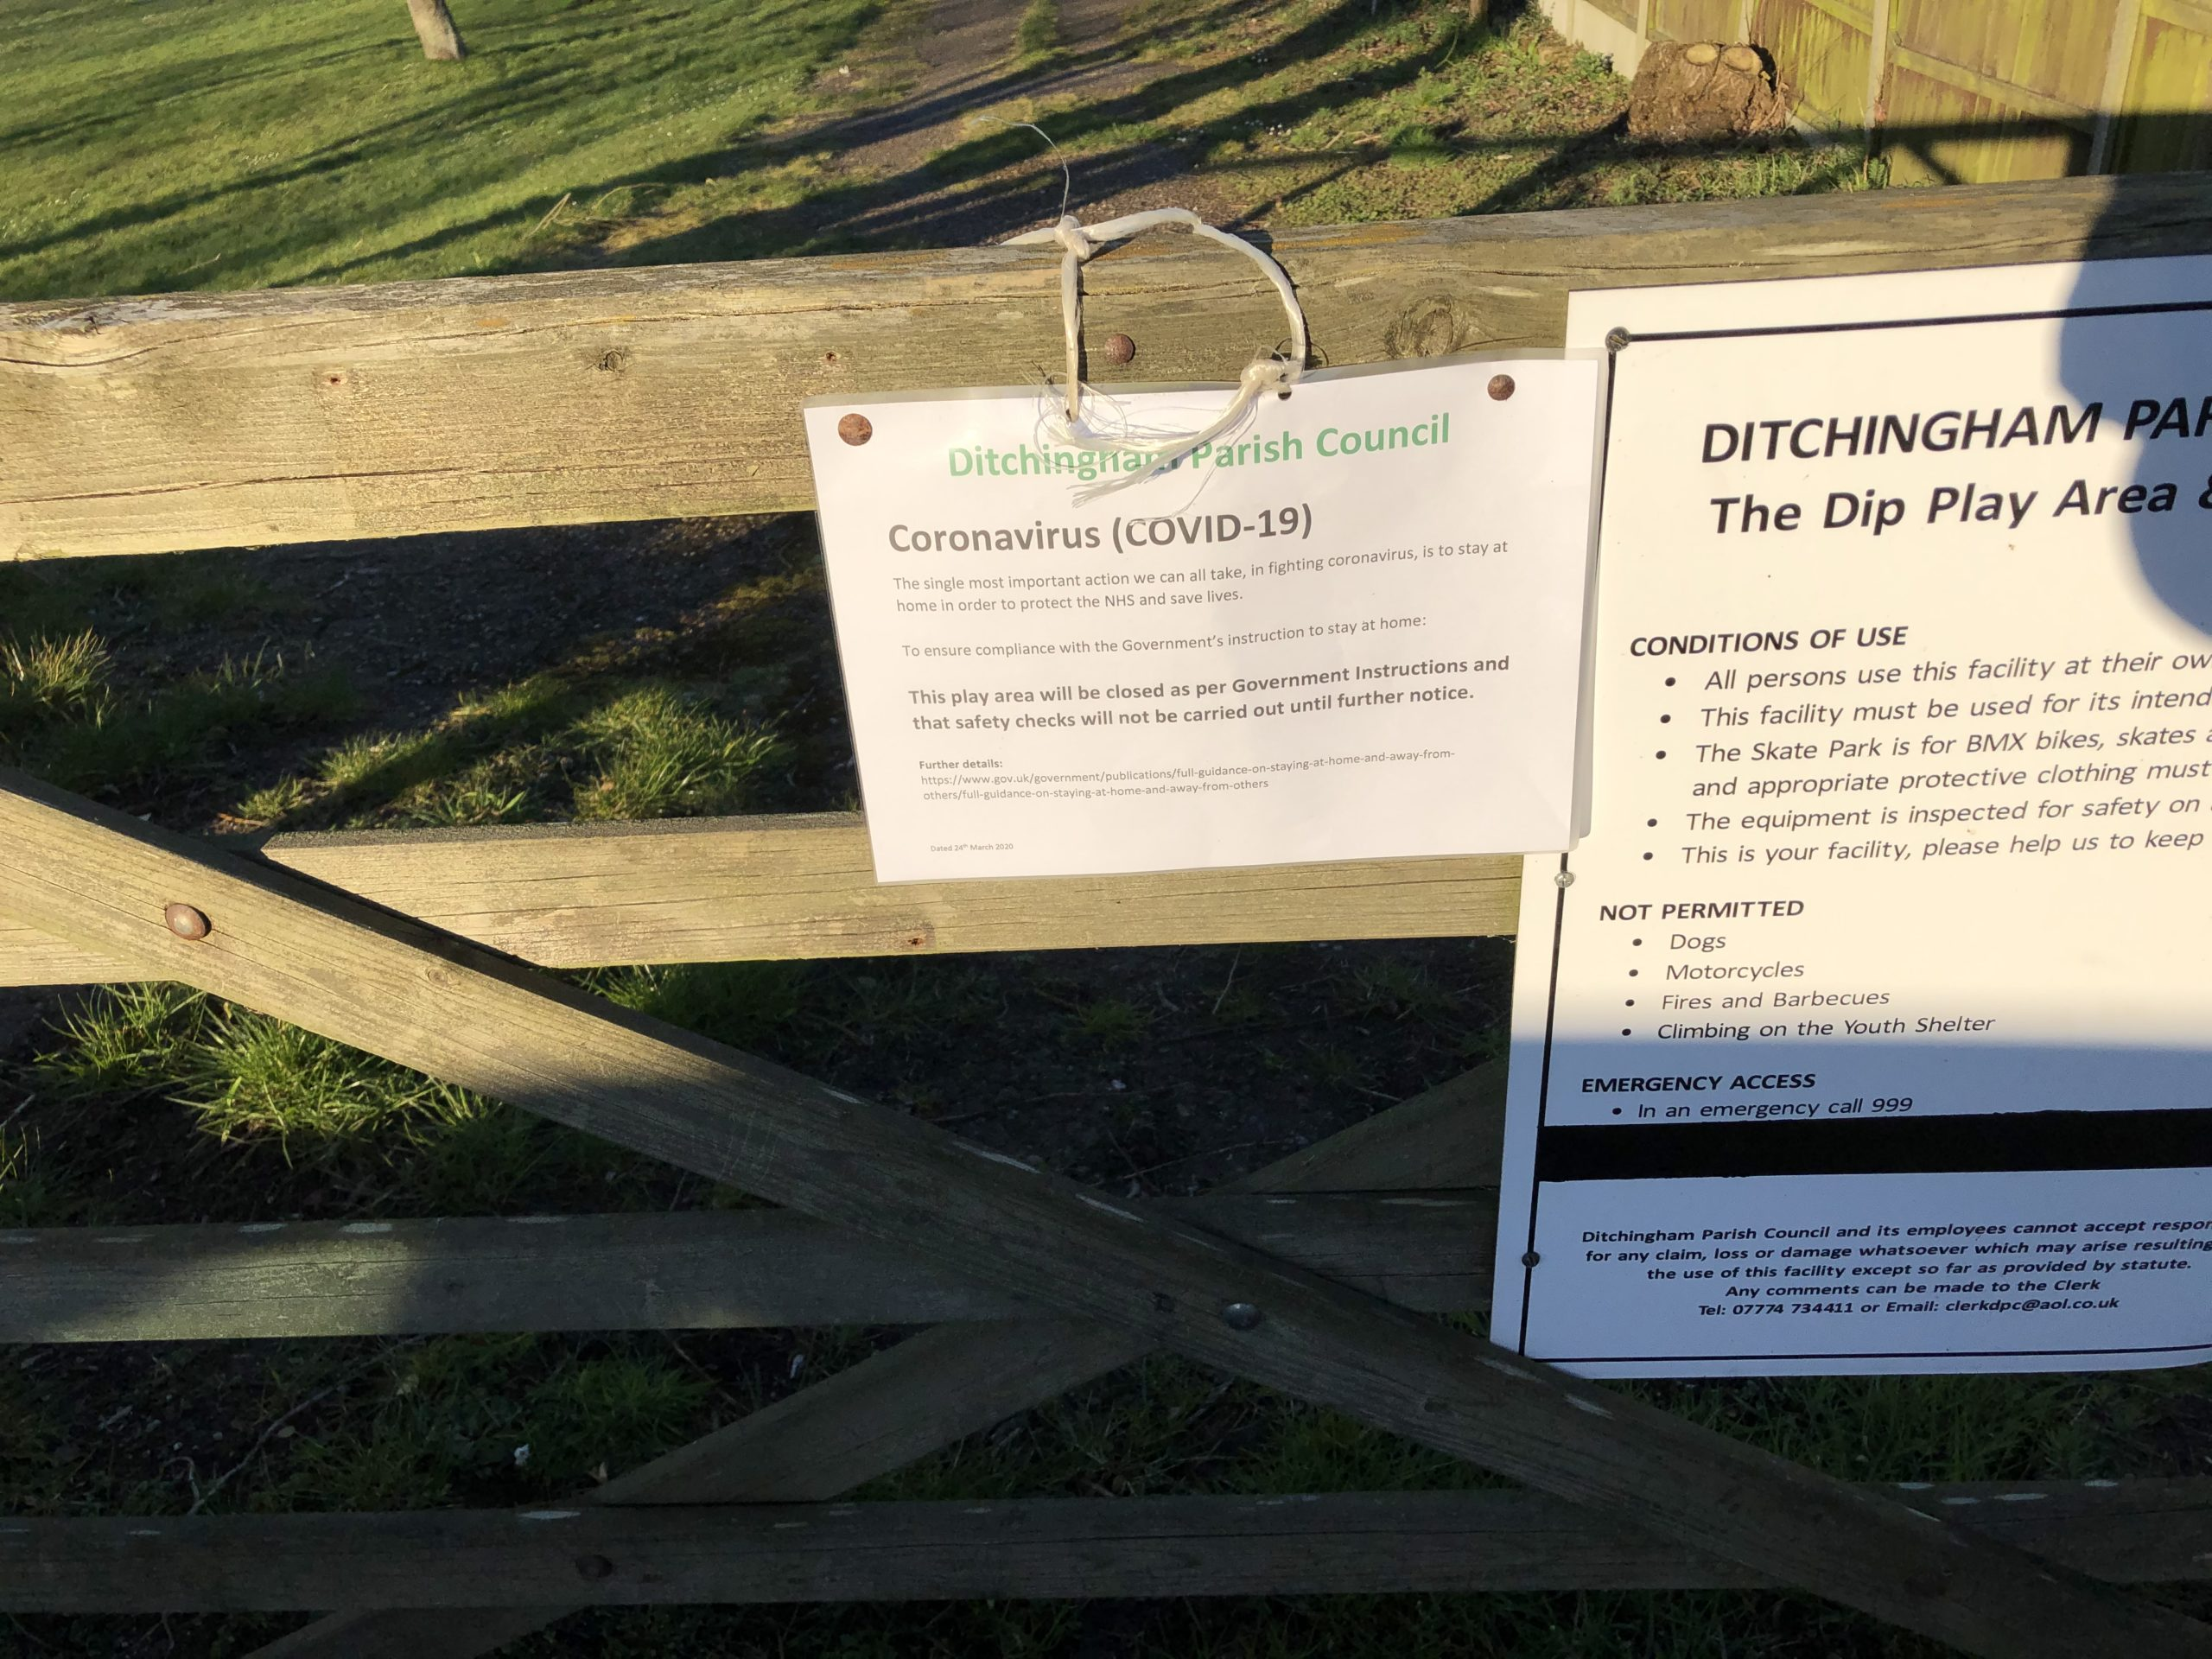 Ditchingham Parish Council's signs sadly closing the Play Areas because of the Coronavirus (COVID-19).